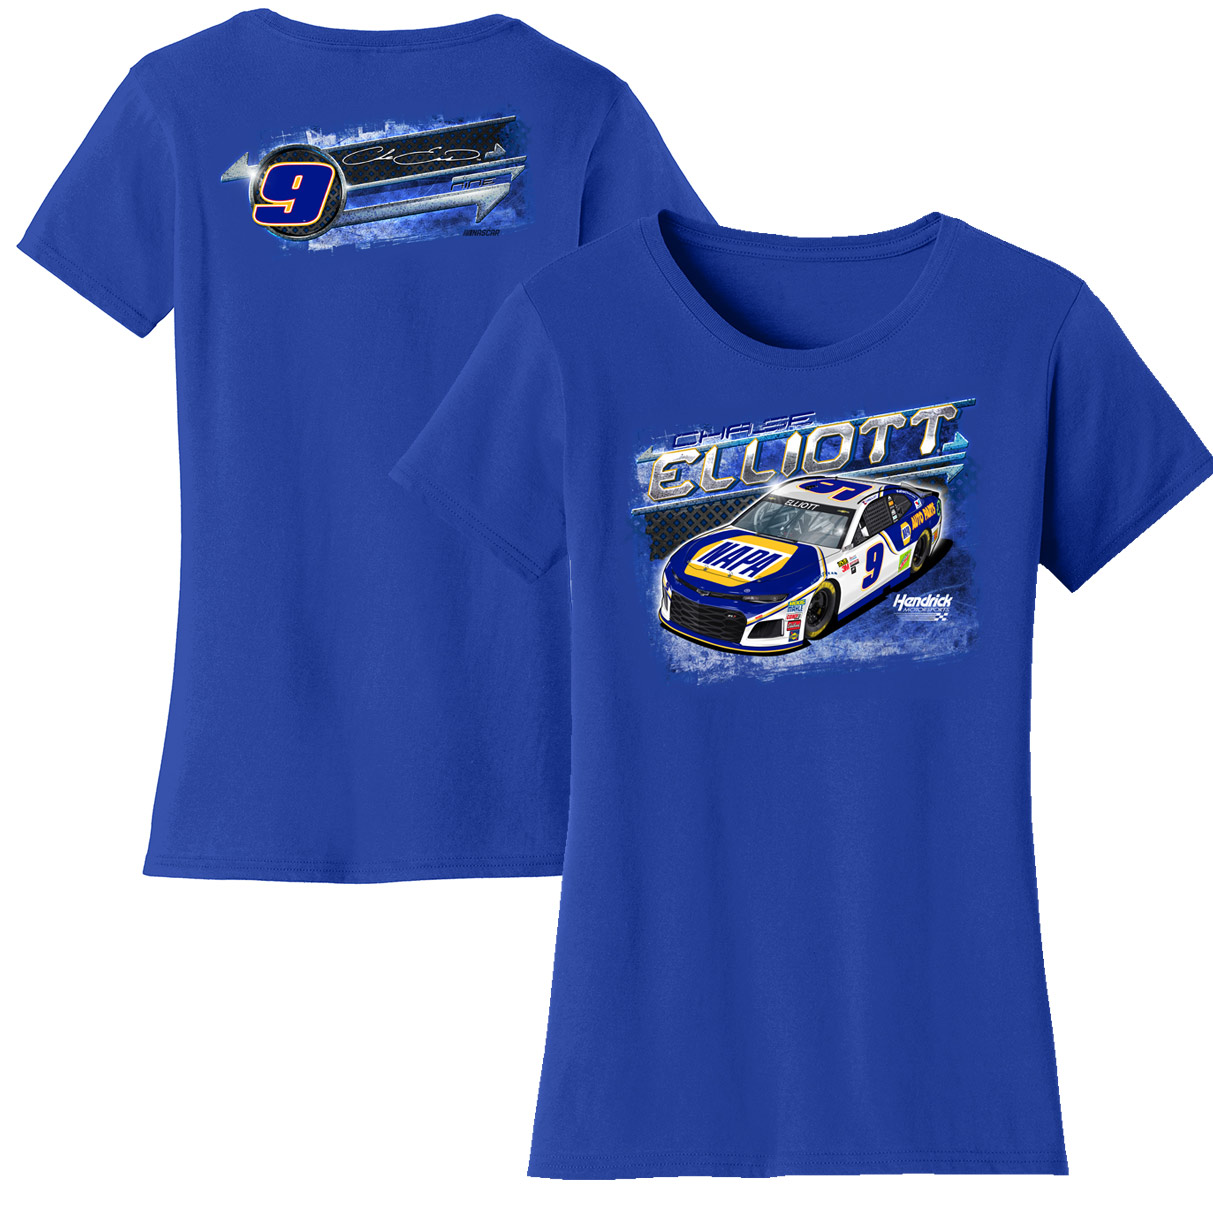 Chase Elliott Women's Car T-Shirt - Royal